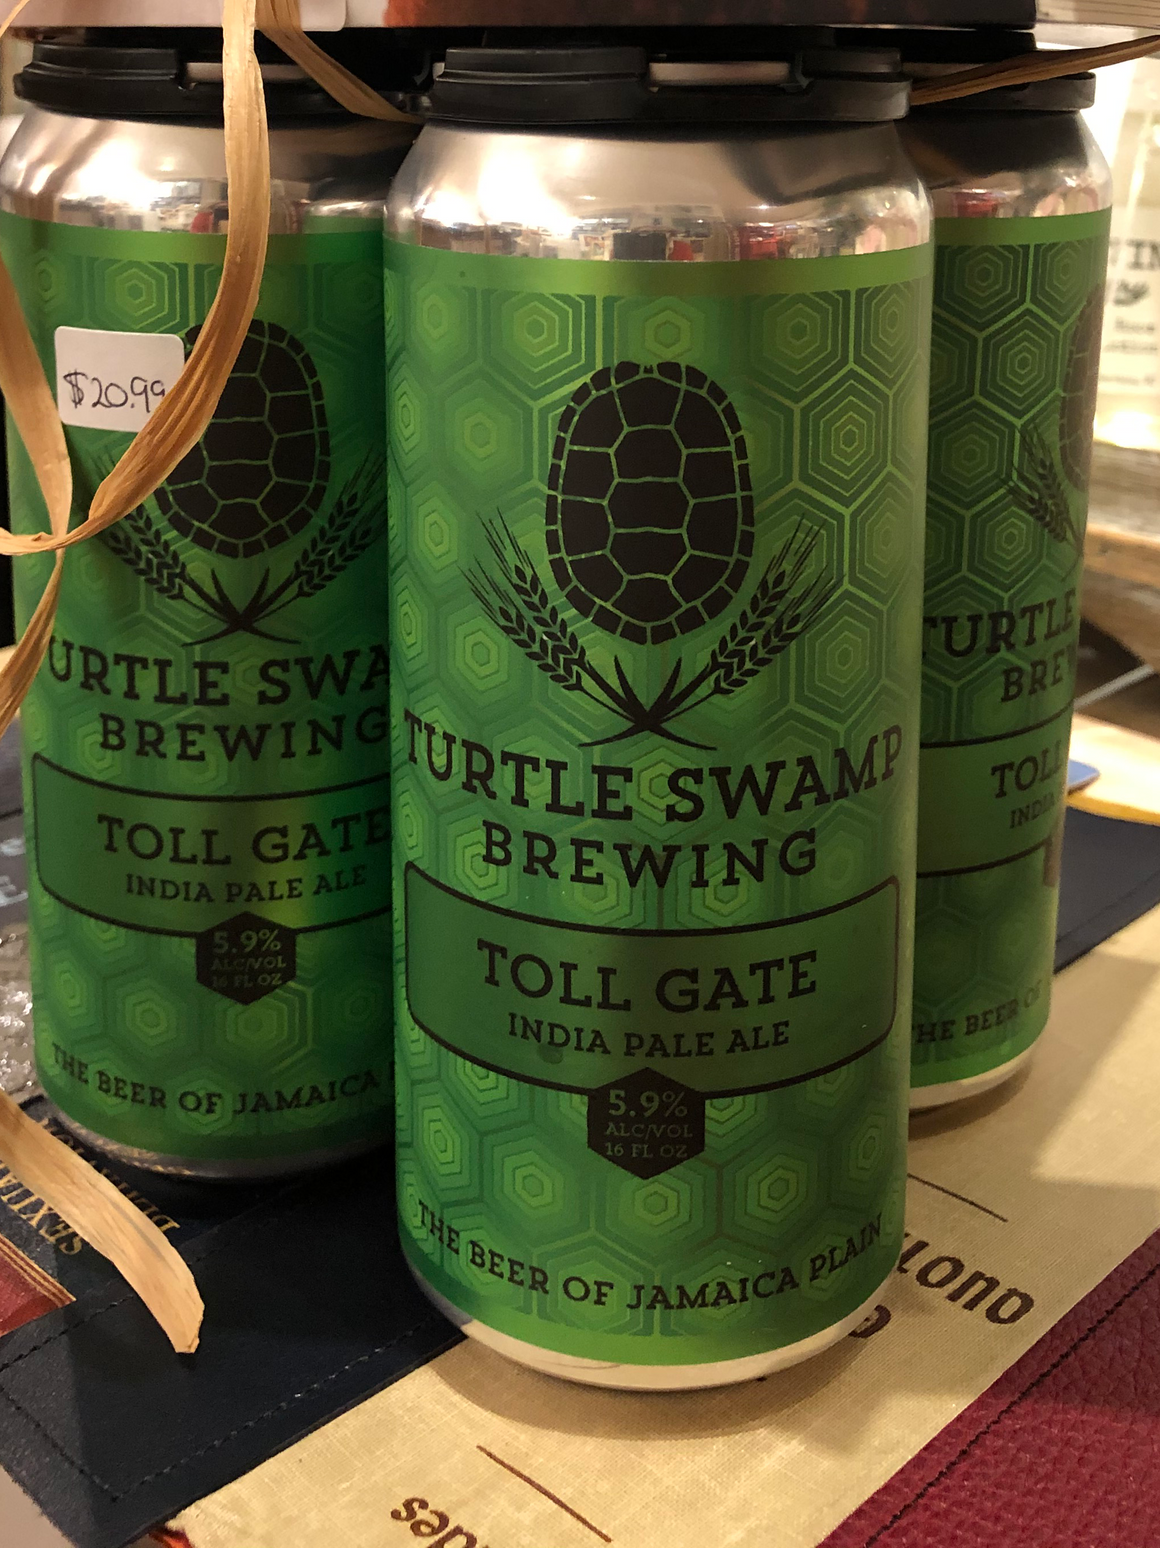 Toll Gate India Pale Ale by Turtle Swamp Brewing